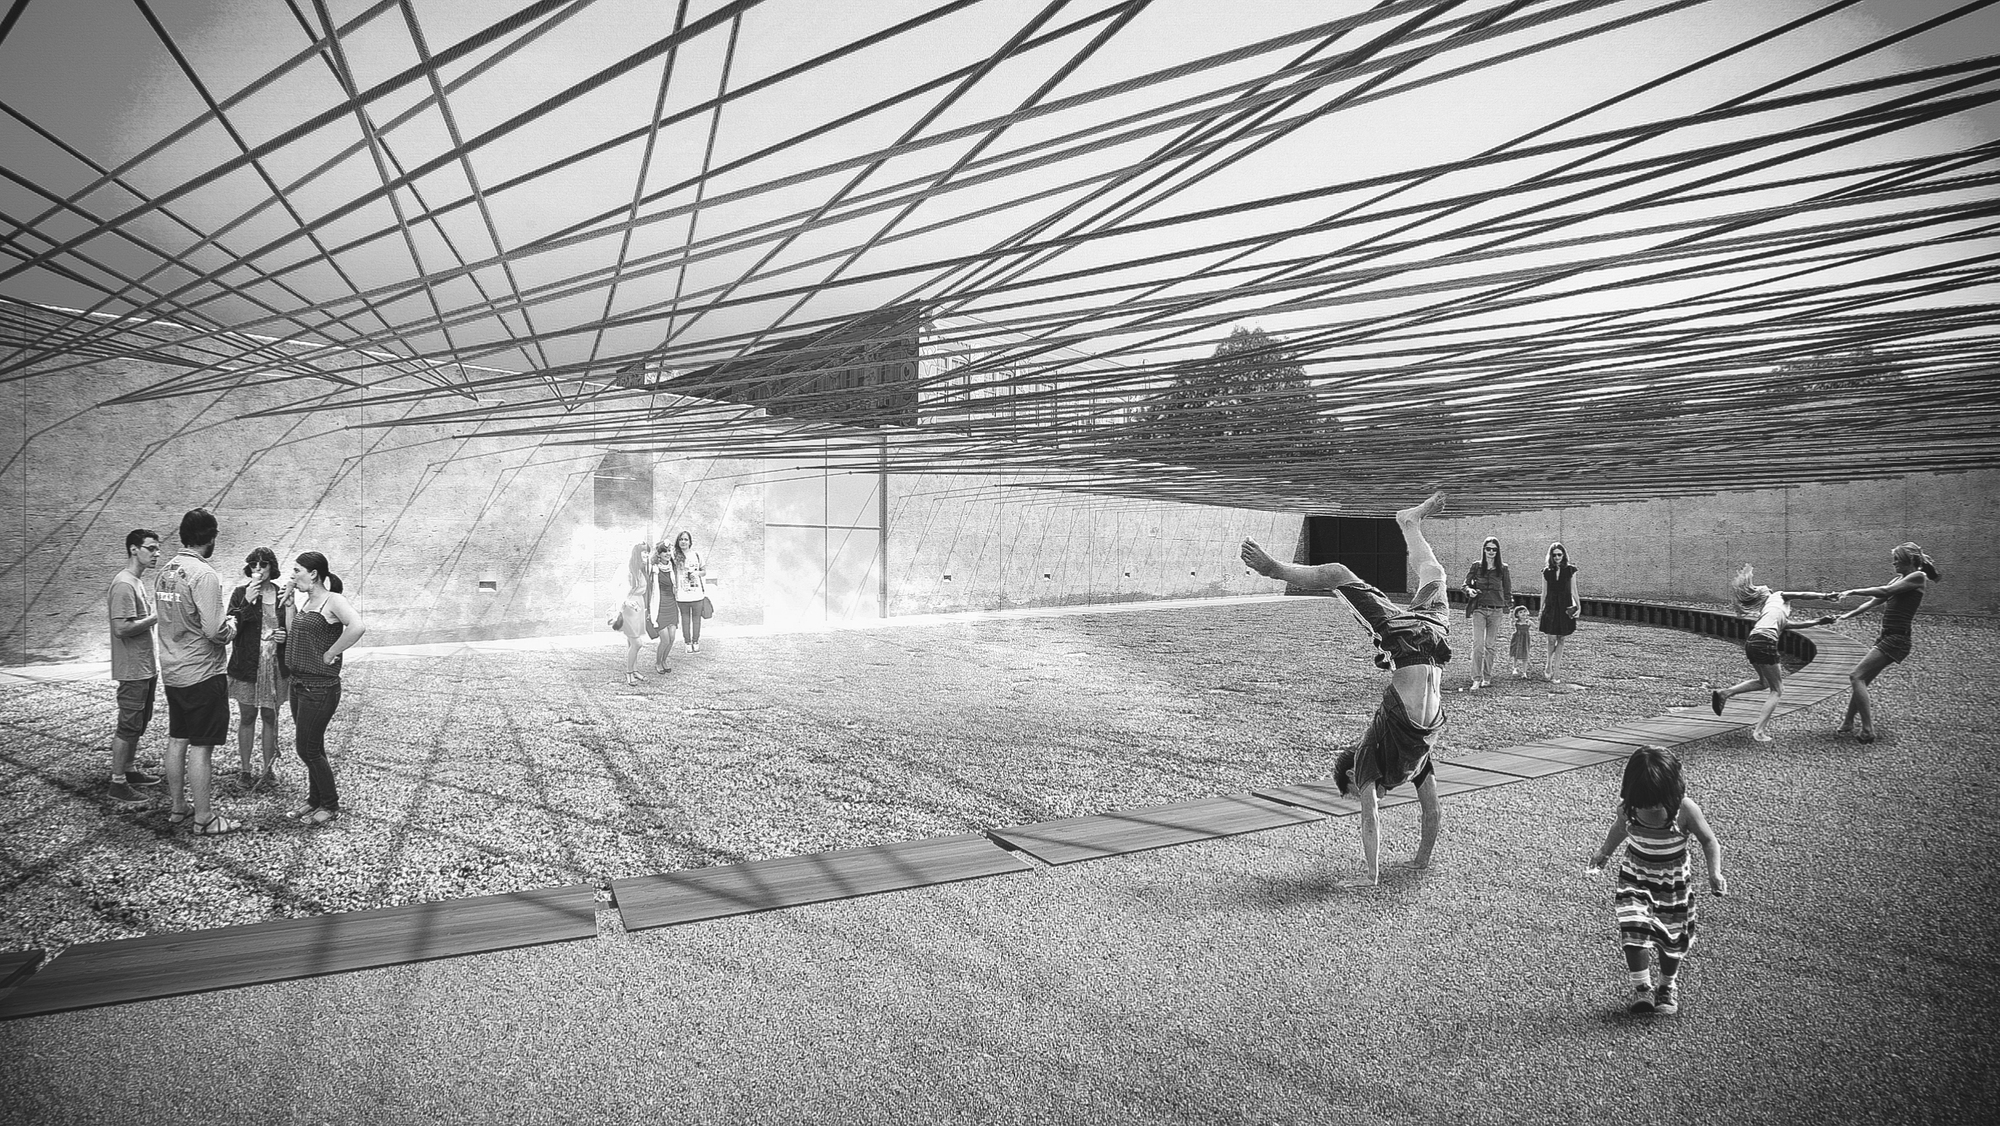 Escobedo Soliz Studio Wins MoMA PS1s 2016 Young Architects Program Weaving The Courtyard 2015